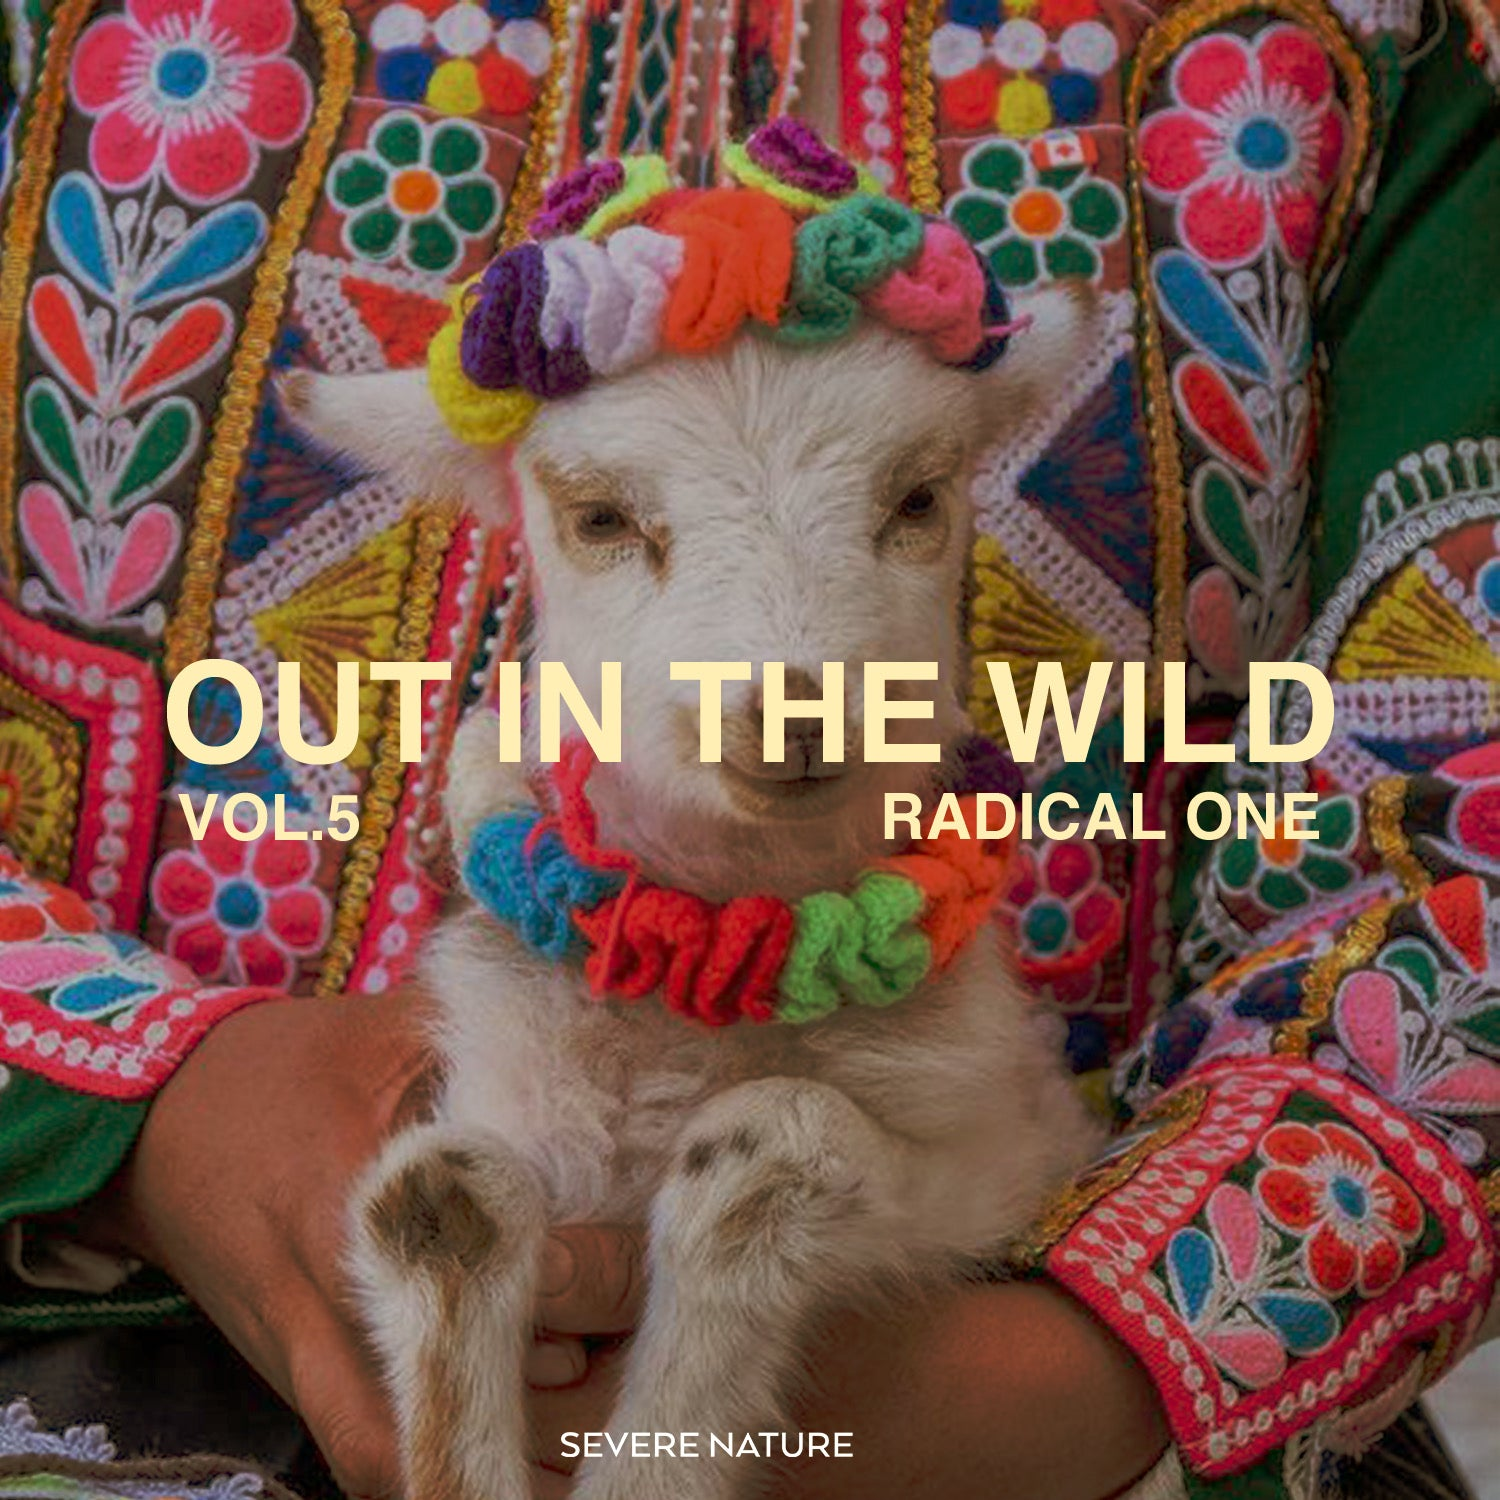 Out In The Wild Vol. 5 Curated by Radical One